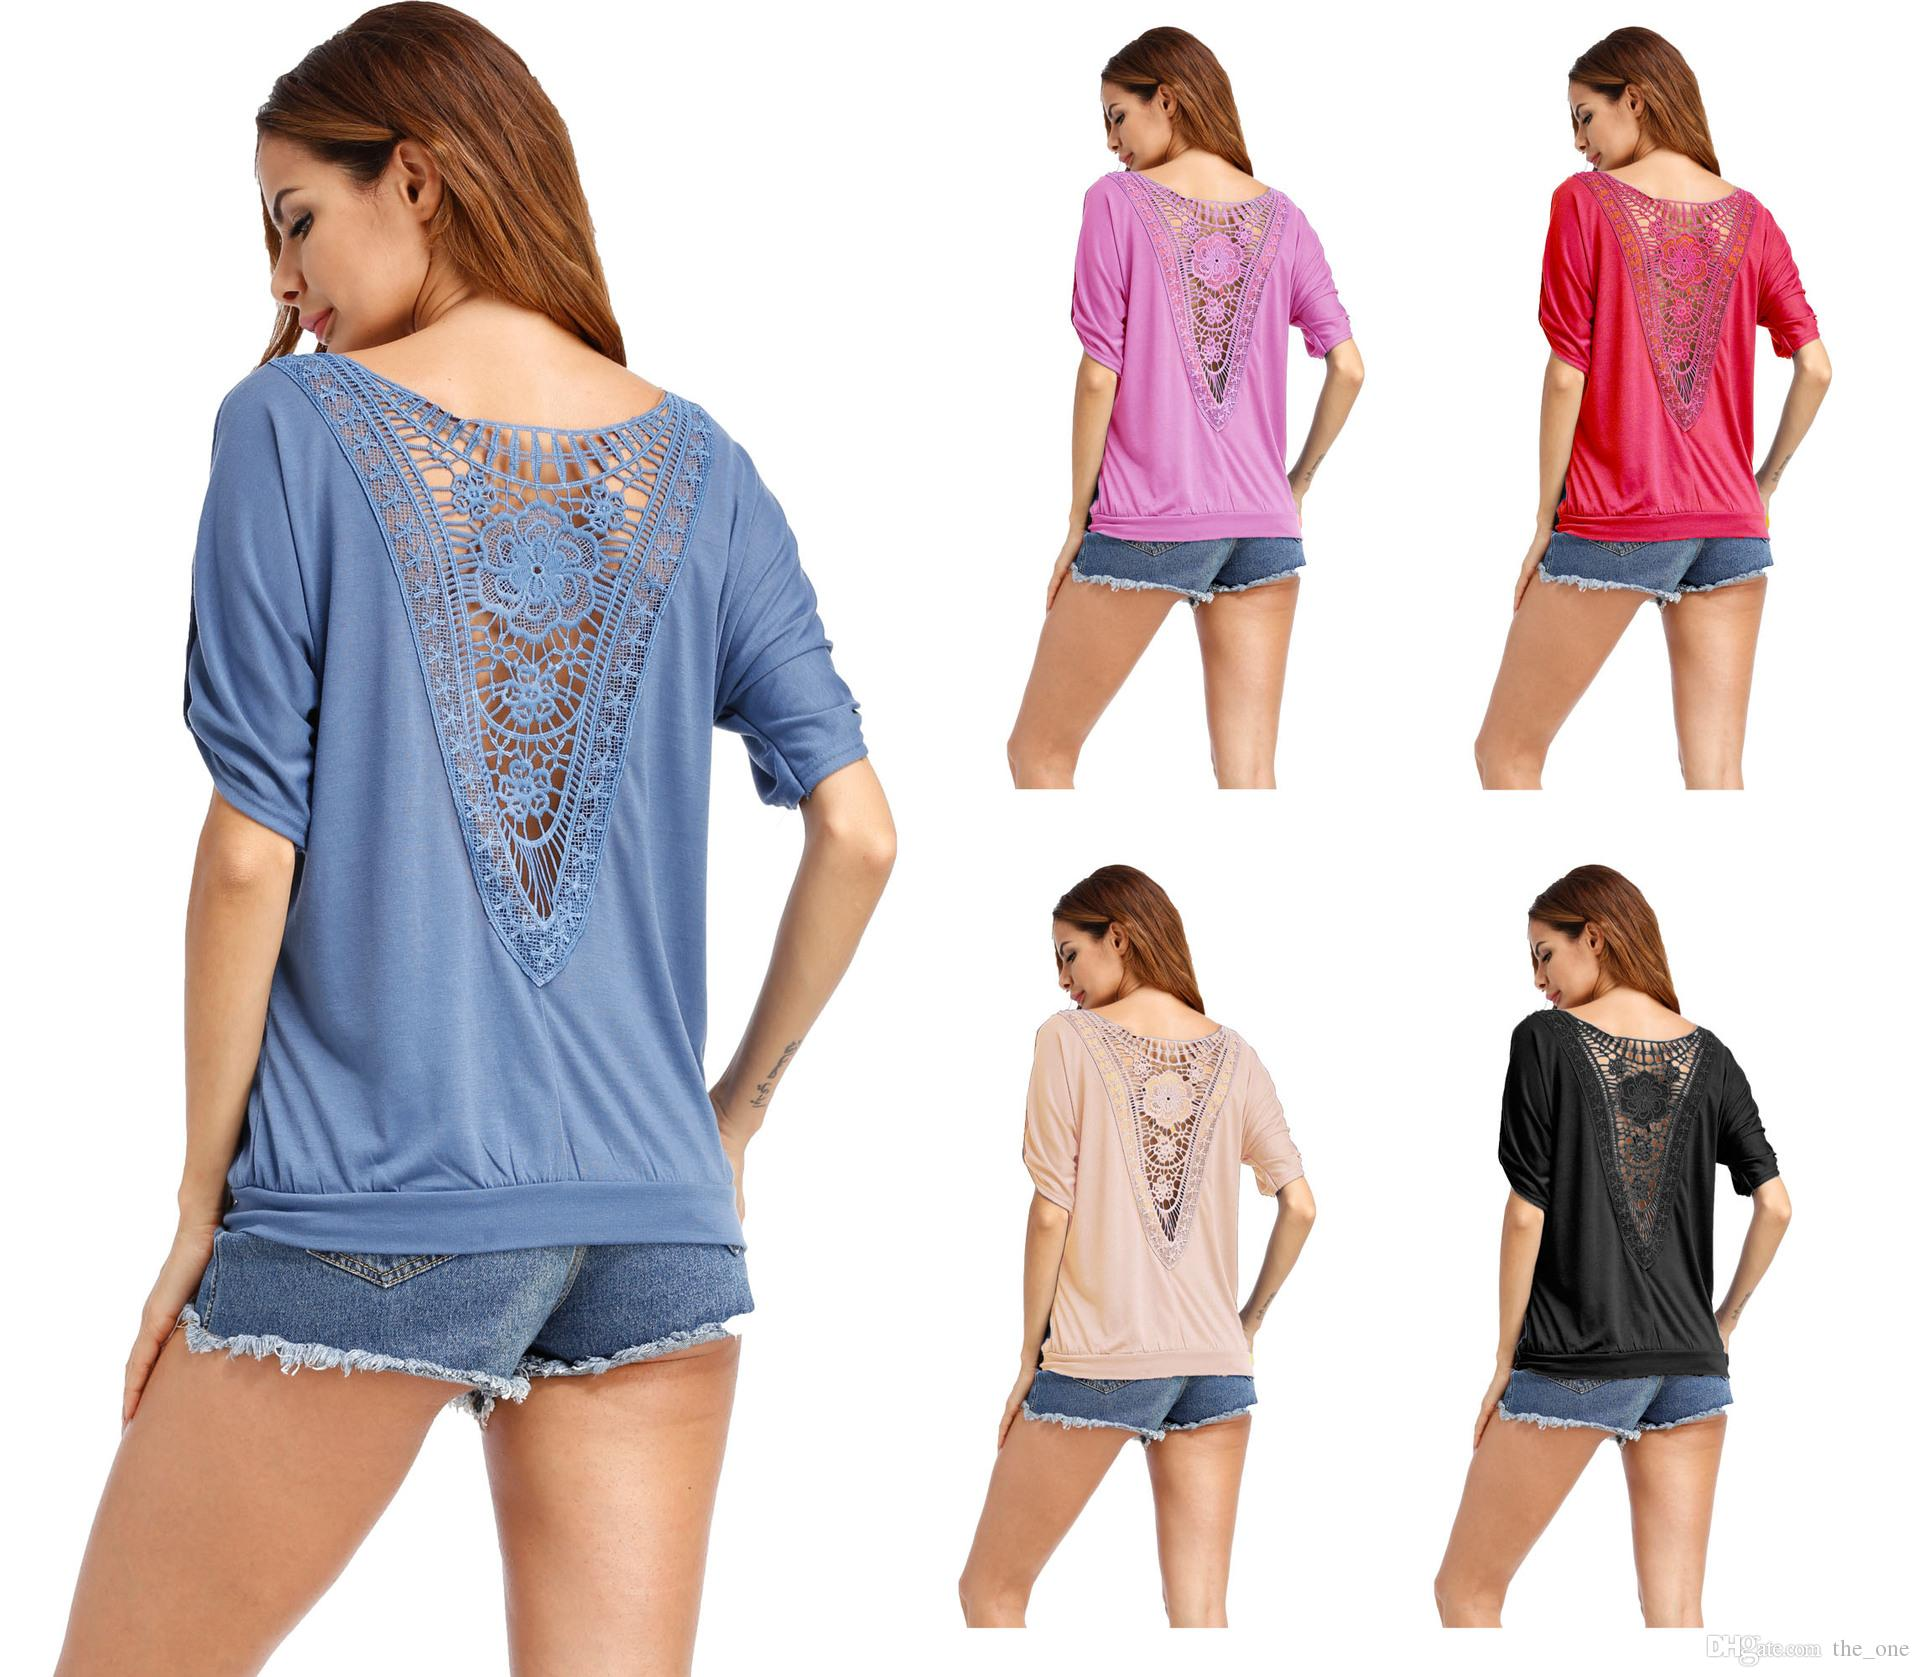 To acquire How to lace wear back shirt pictures trends